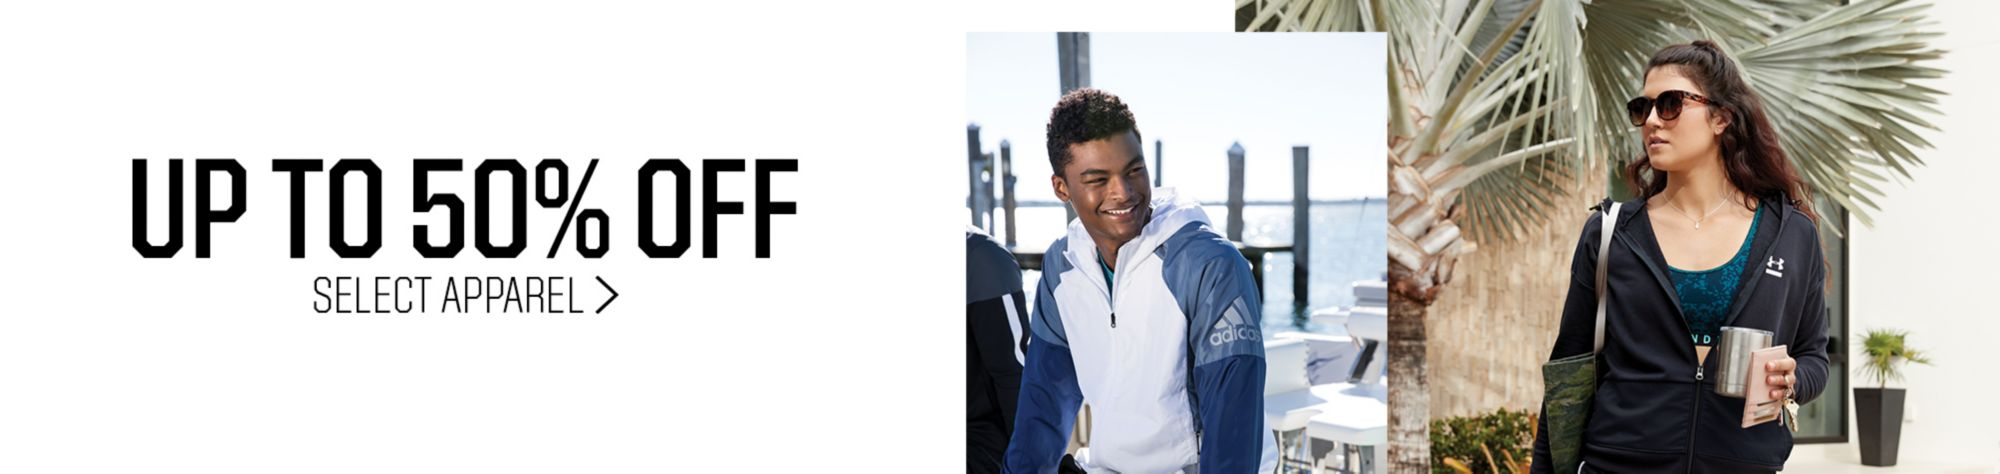 Up to 50% Off Select Apparel